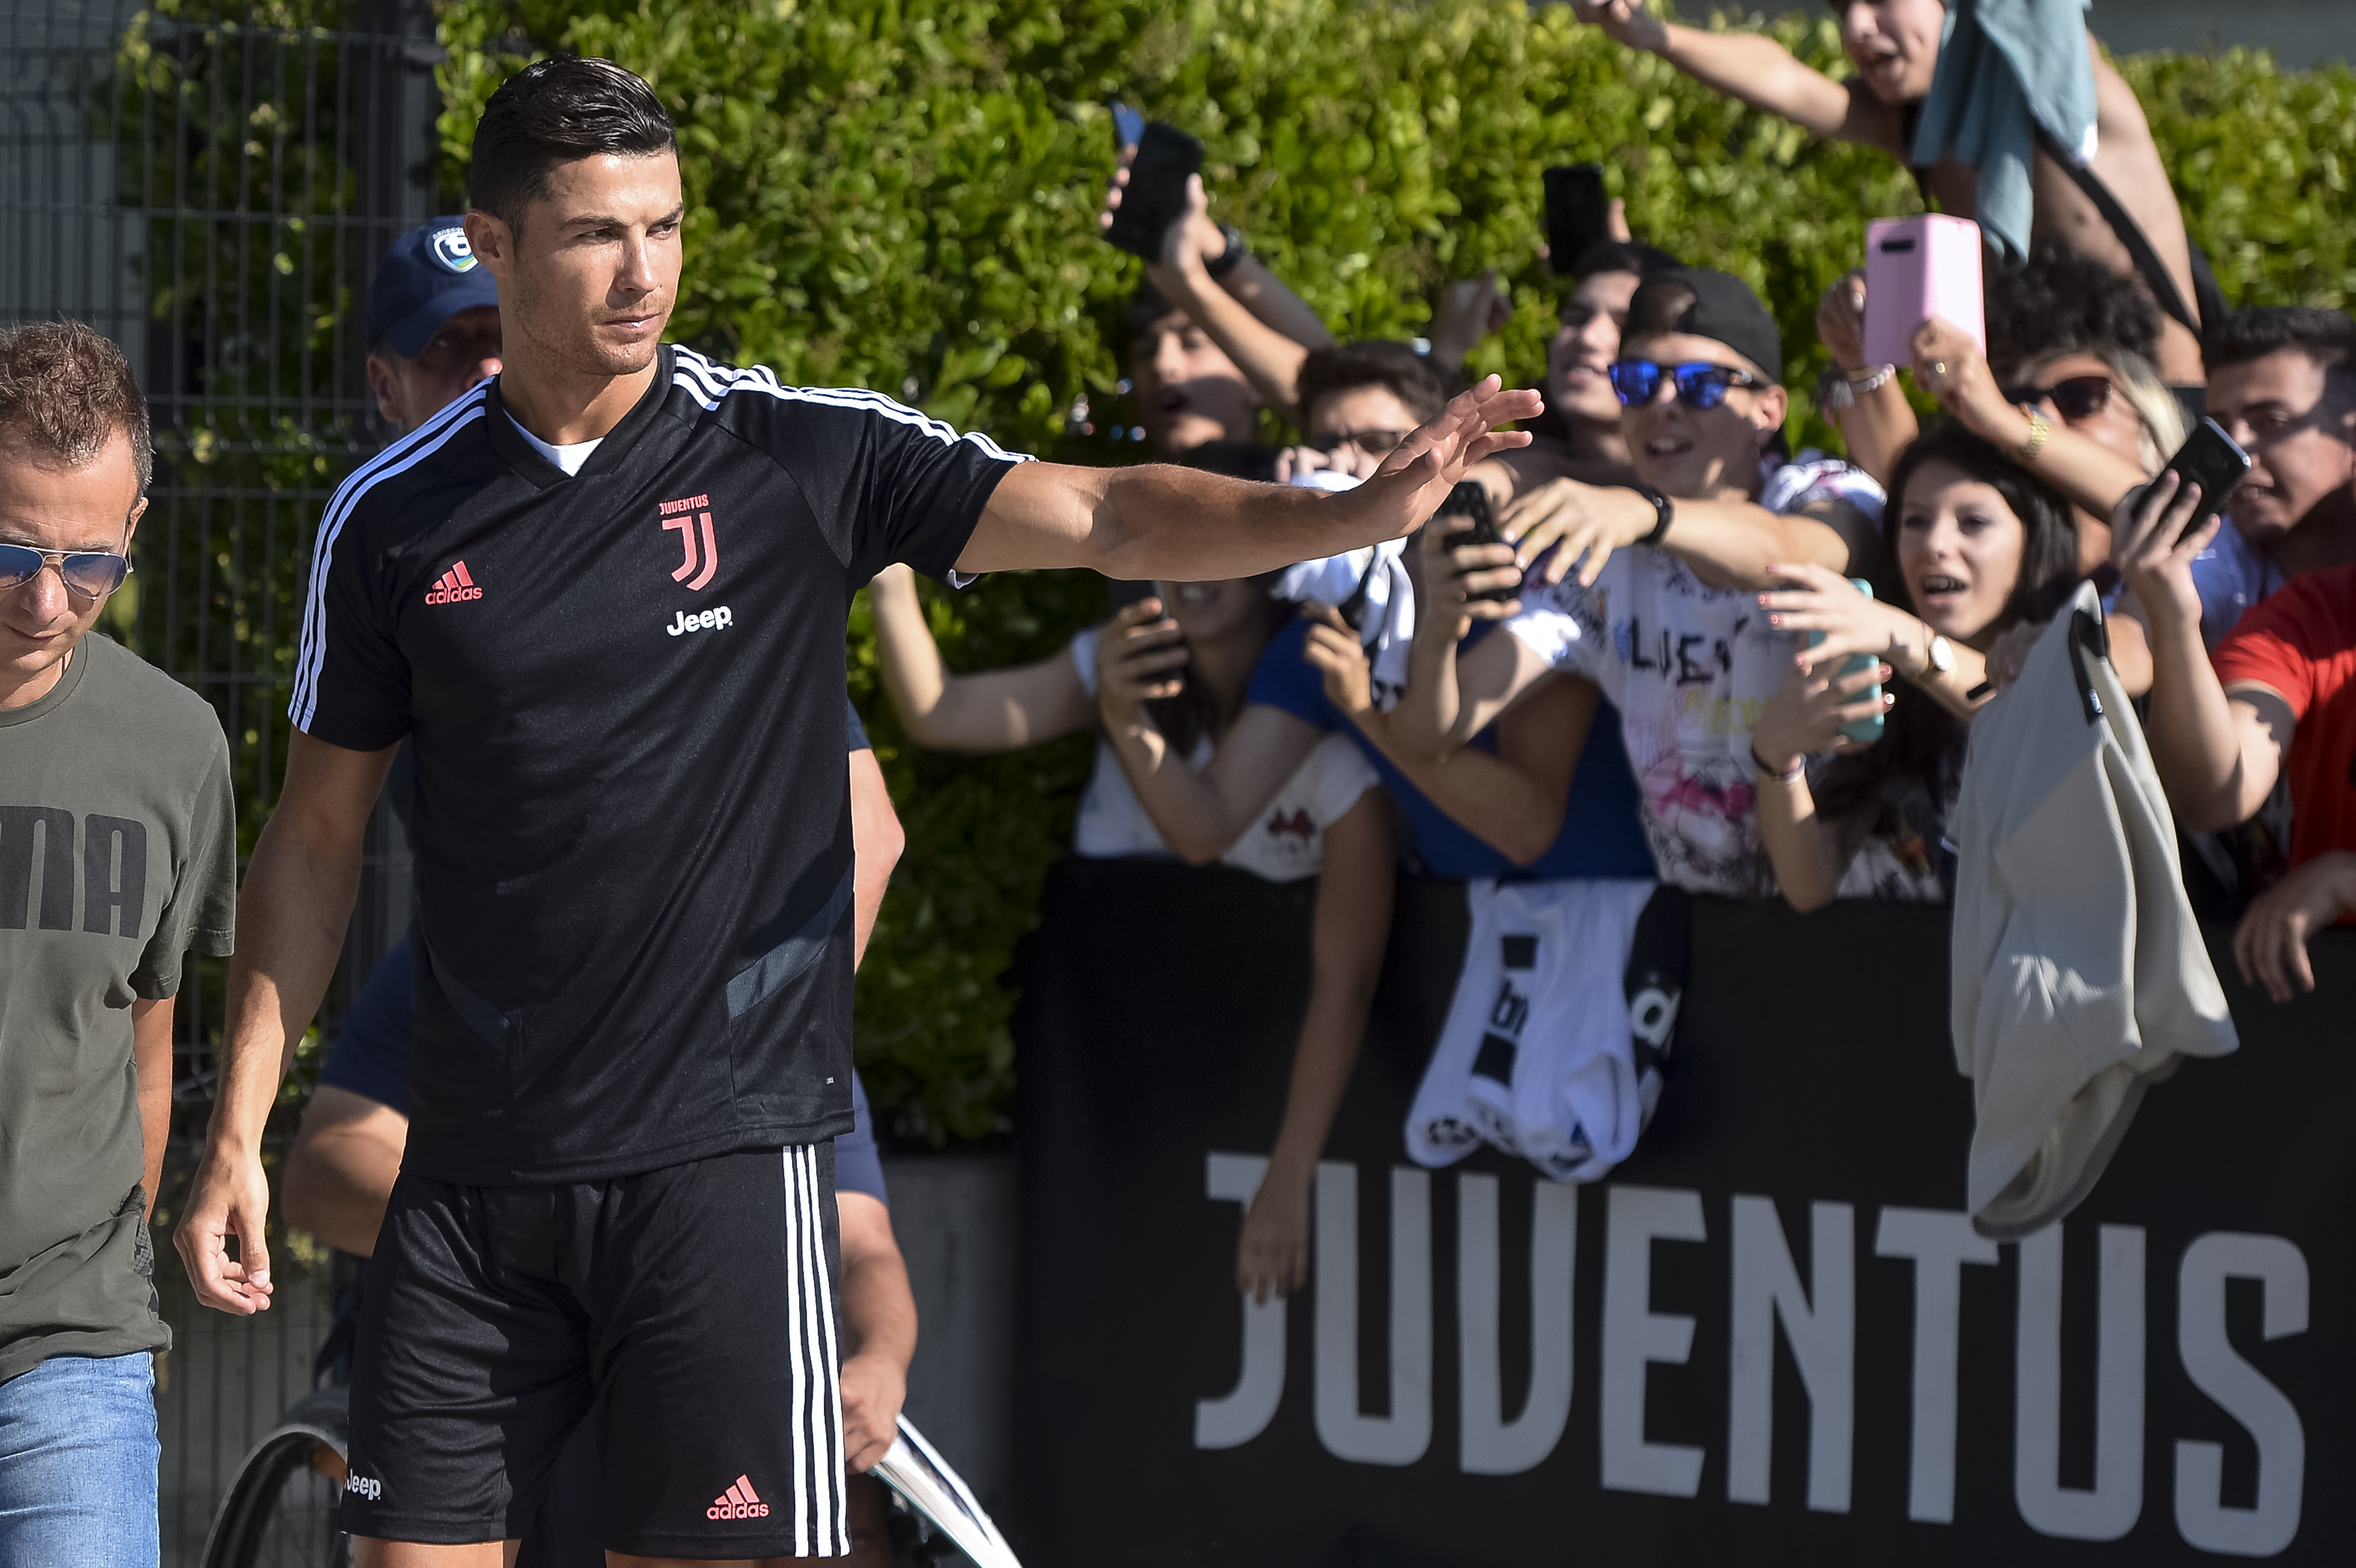 Juventus player Cristiano Ronaldo waves to suppoters as he...